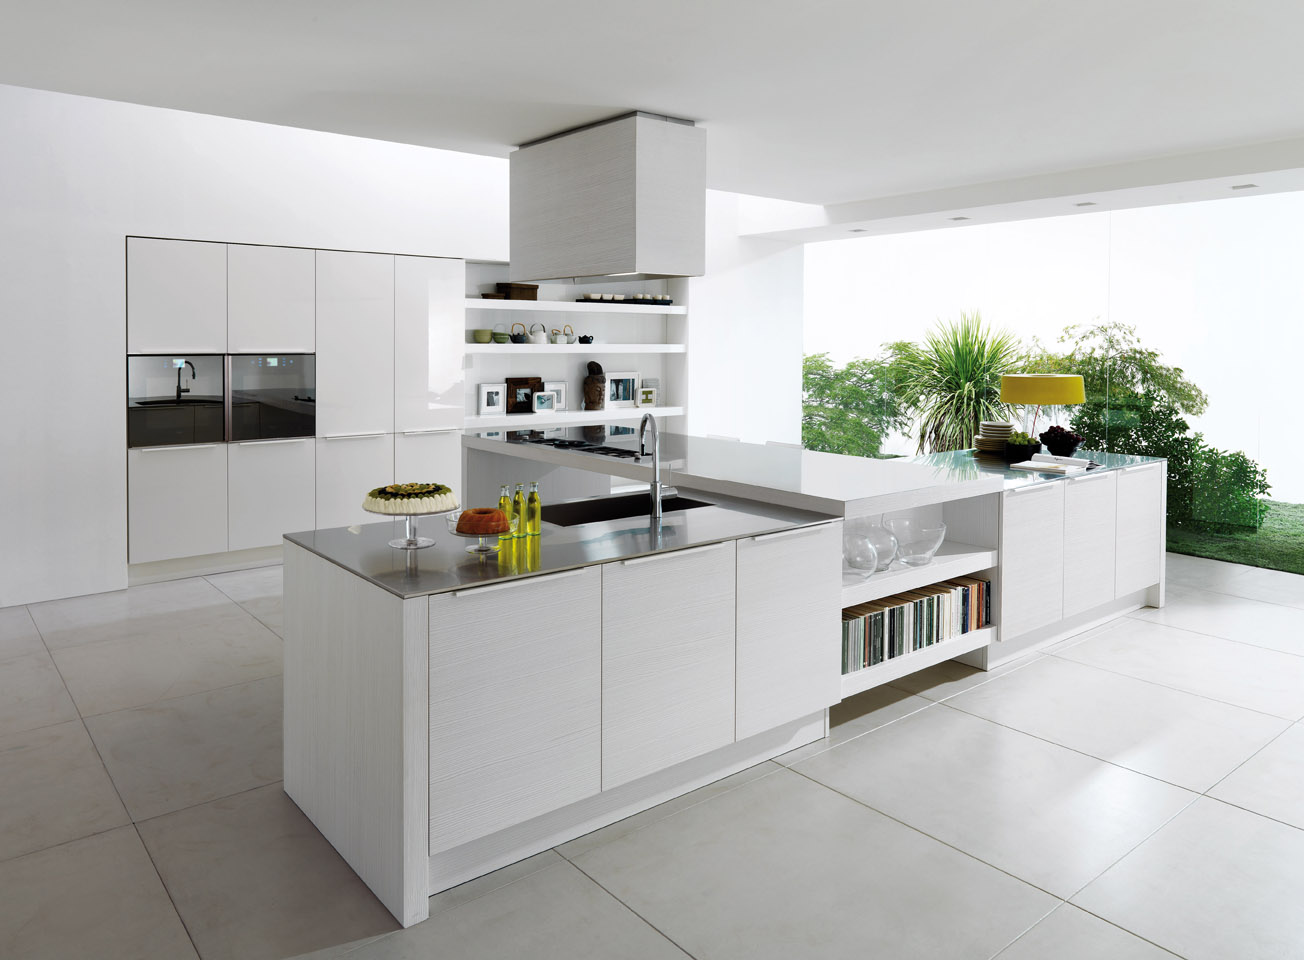 Impressive Modern Kitchen Design Ideas 1304 x 960 · 183 kB · jpeg